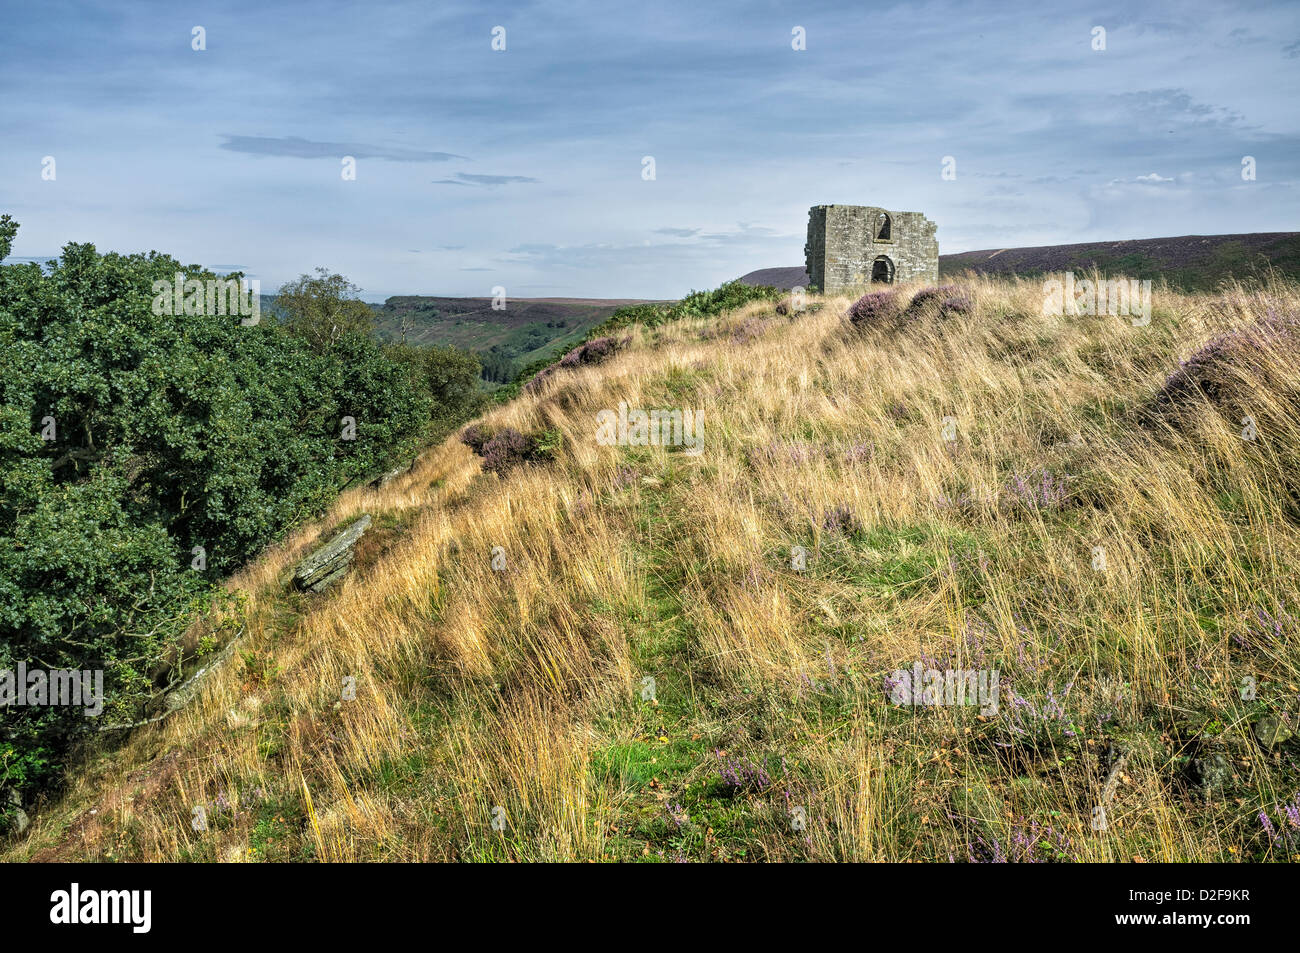 Ruins of Skelton Tower perched on a hilltop in the midst of the North York Moors near Levisham, Yorkshire, UK. - Stock Image